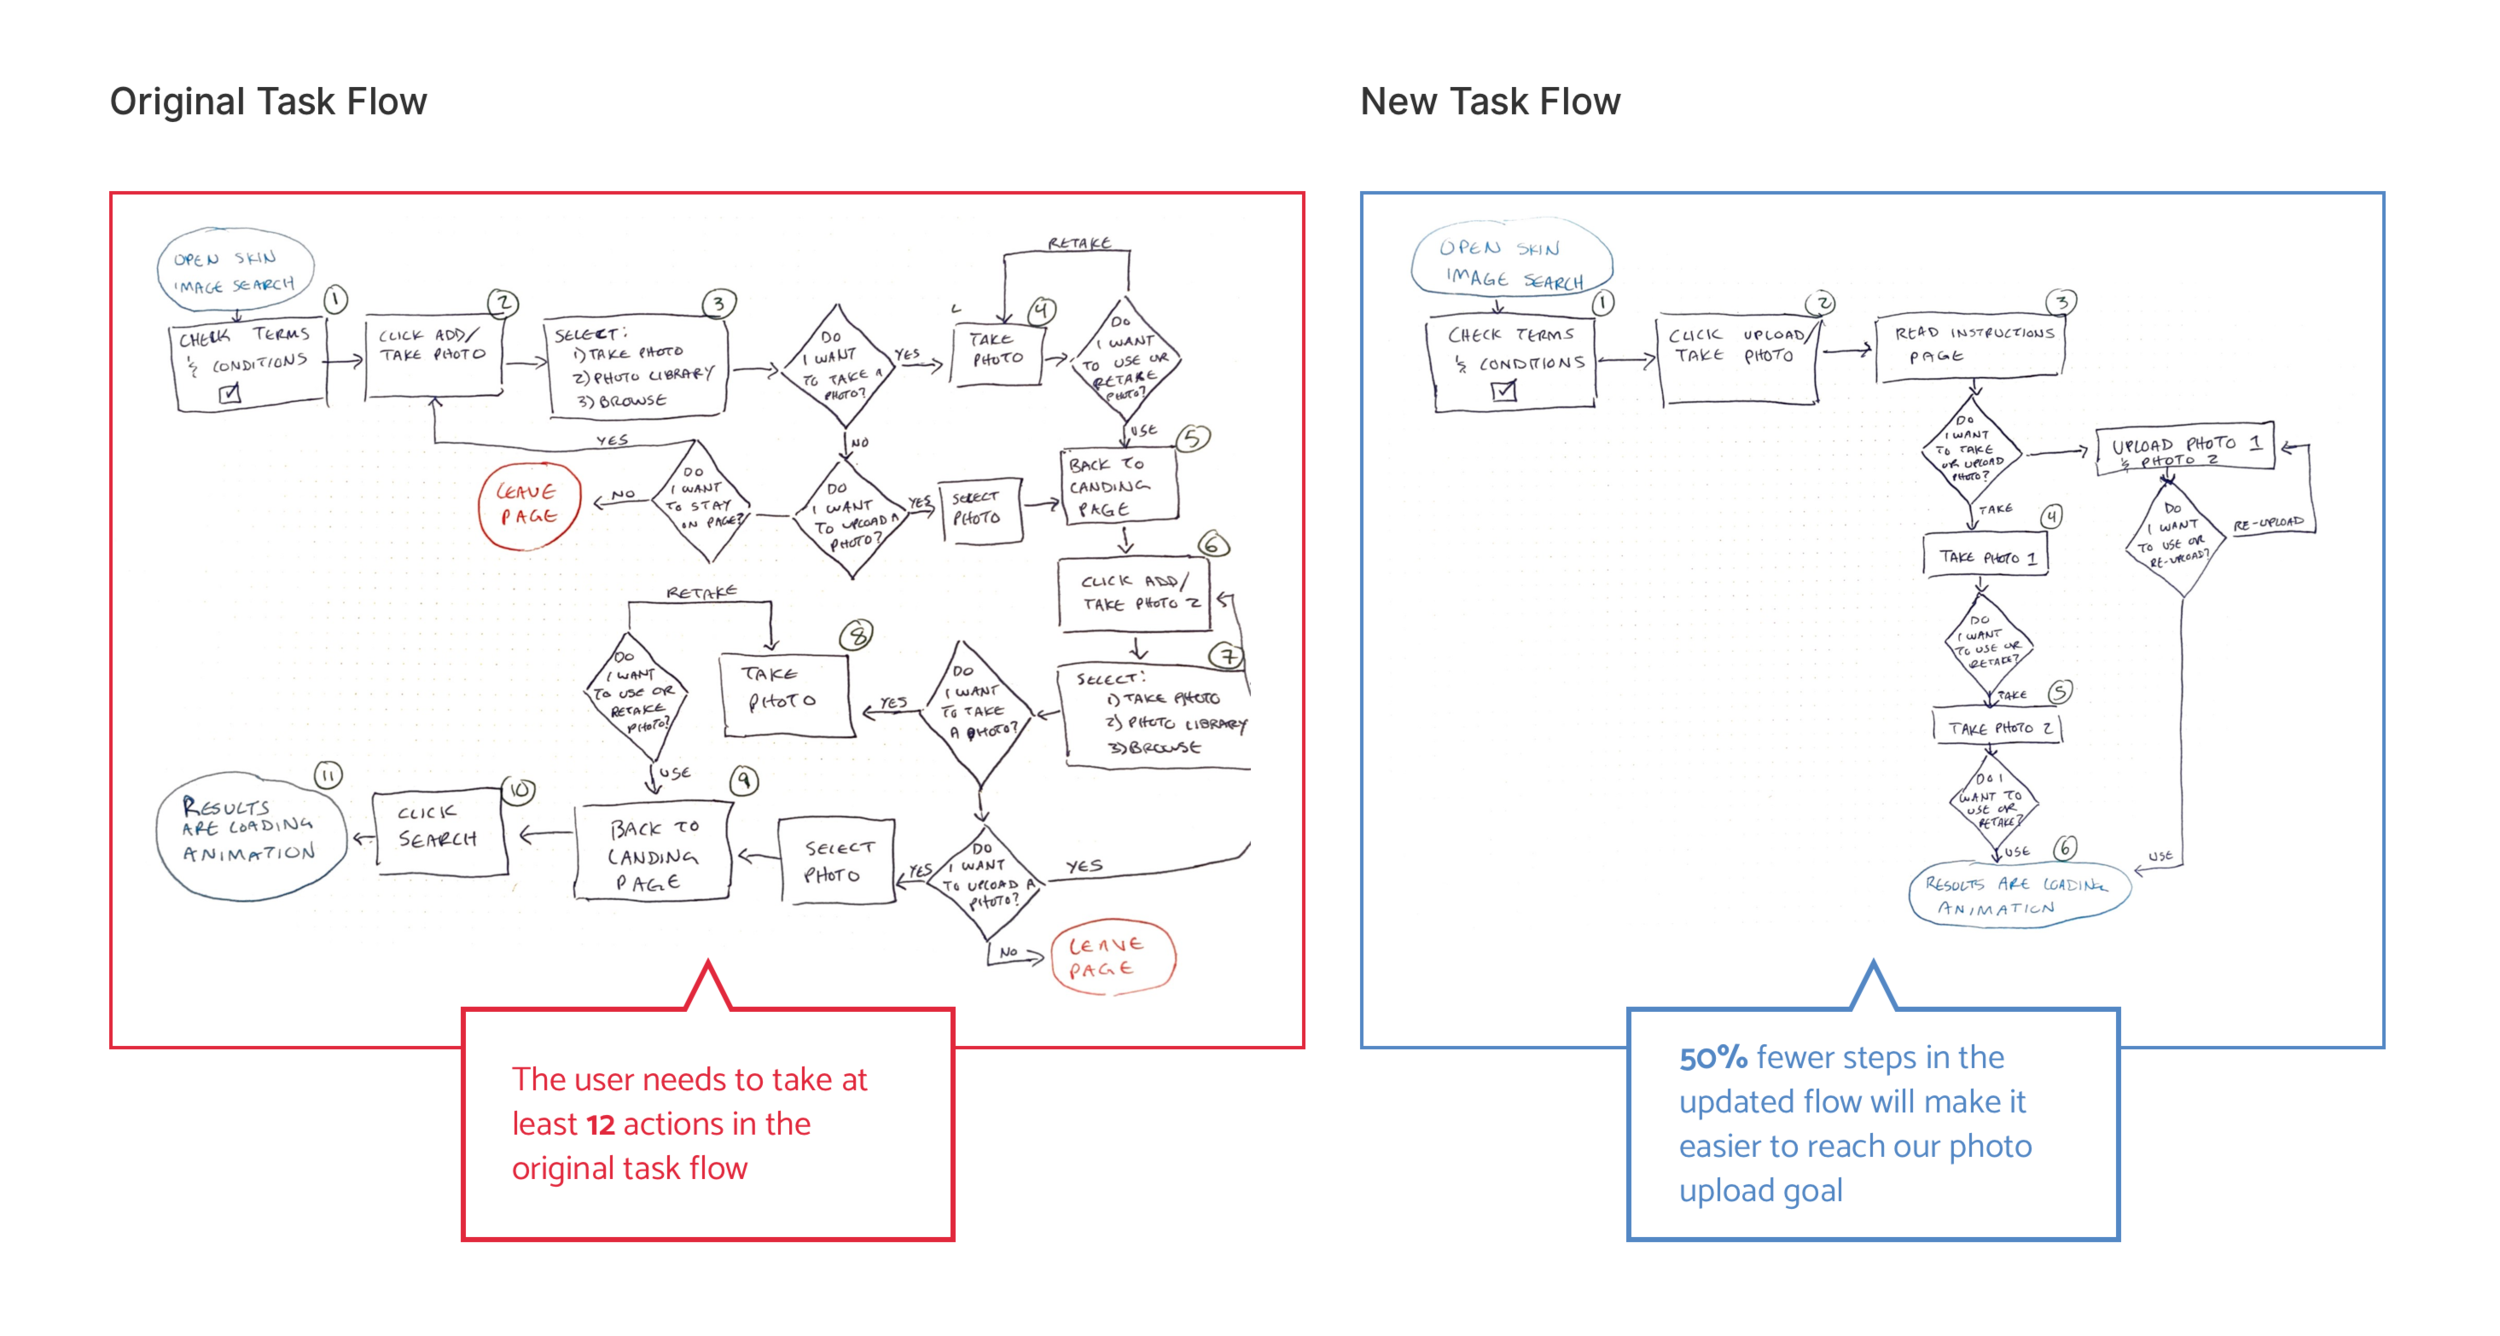 Original task flow compared with a new task flow